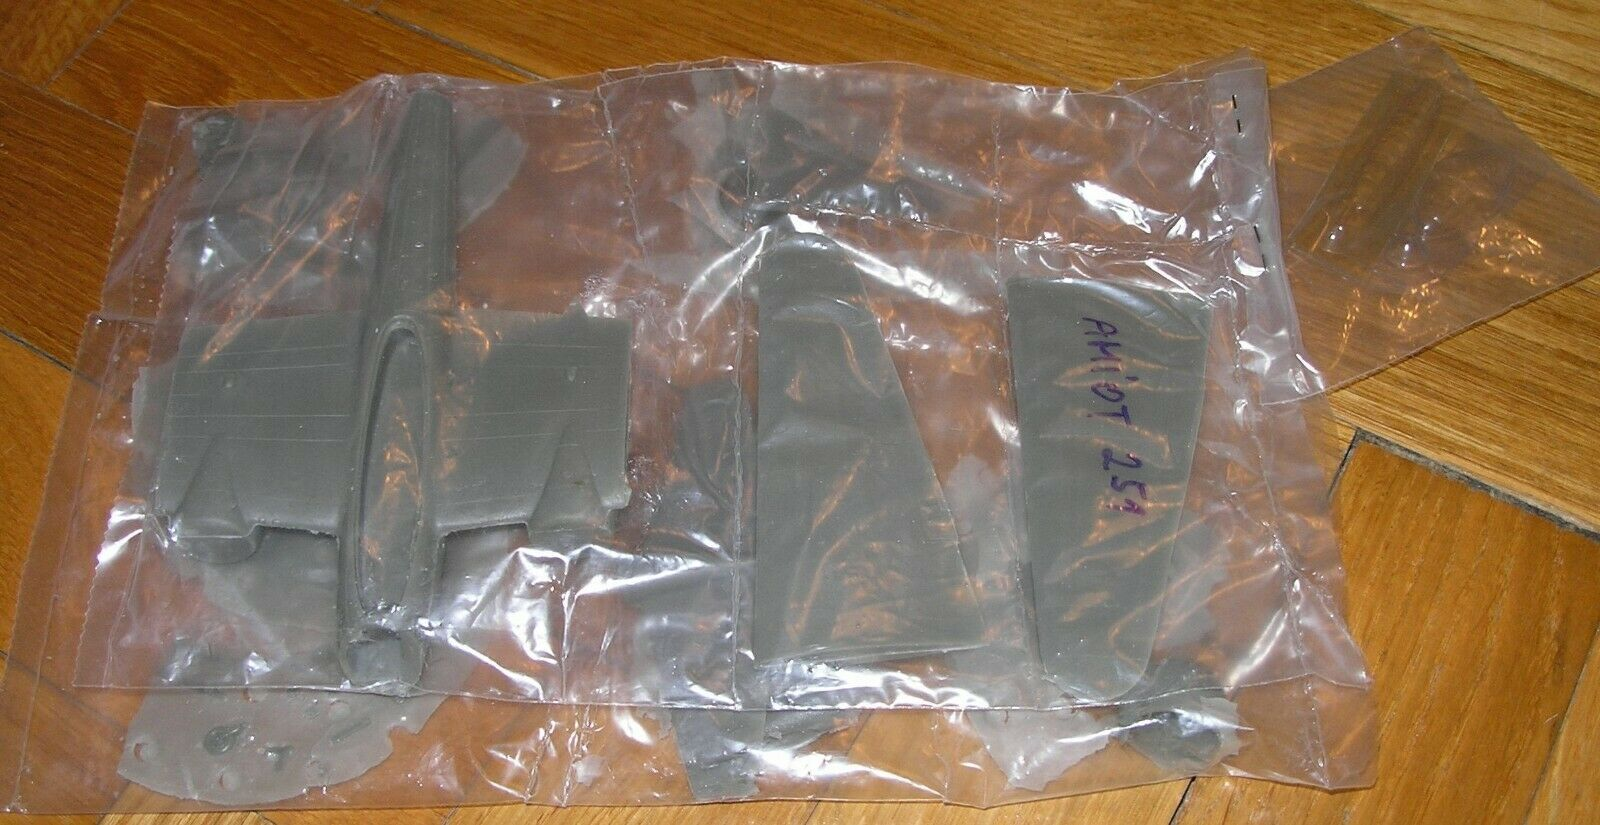 1 72 Czech resin Amiot 351 bagged kit - rare OOP